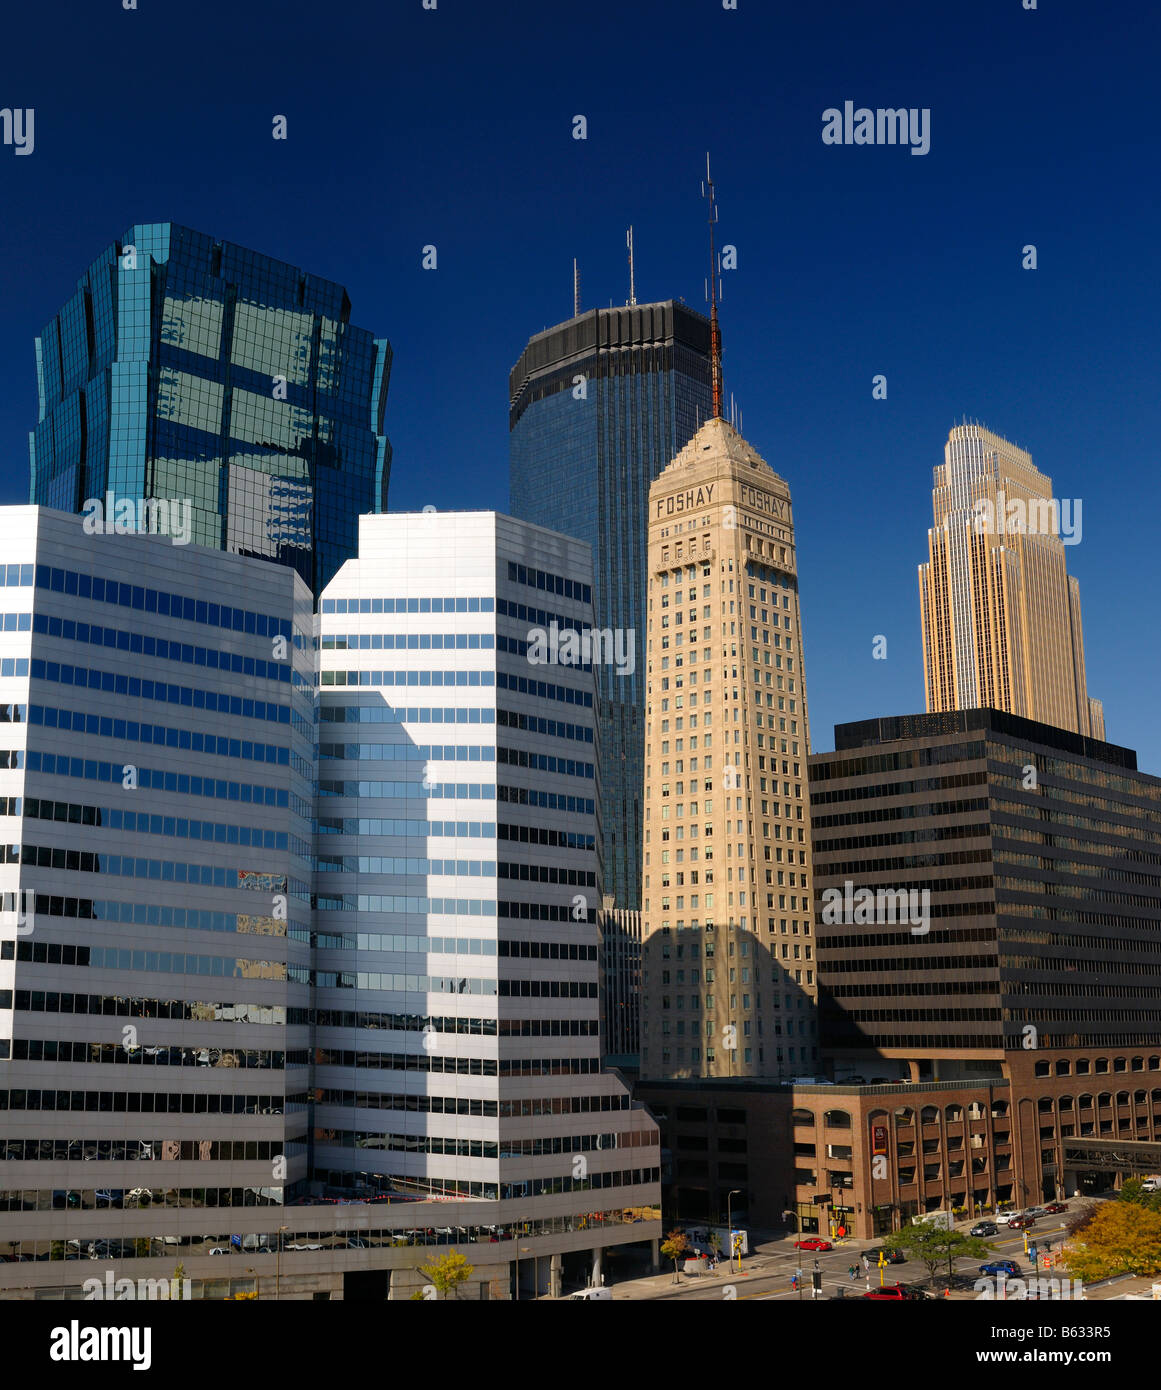 Kinnard Financial Center and AT T and IDS and Foshay and TCF Towers and Wells Fargo in Minneapolis cityscape Minnesota - Stock Image